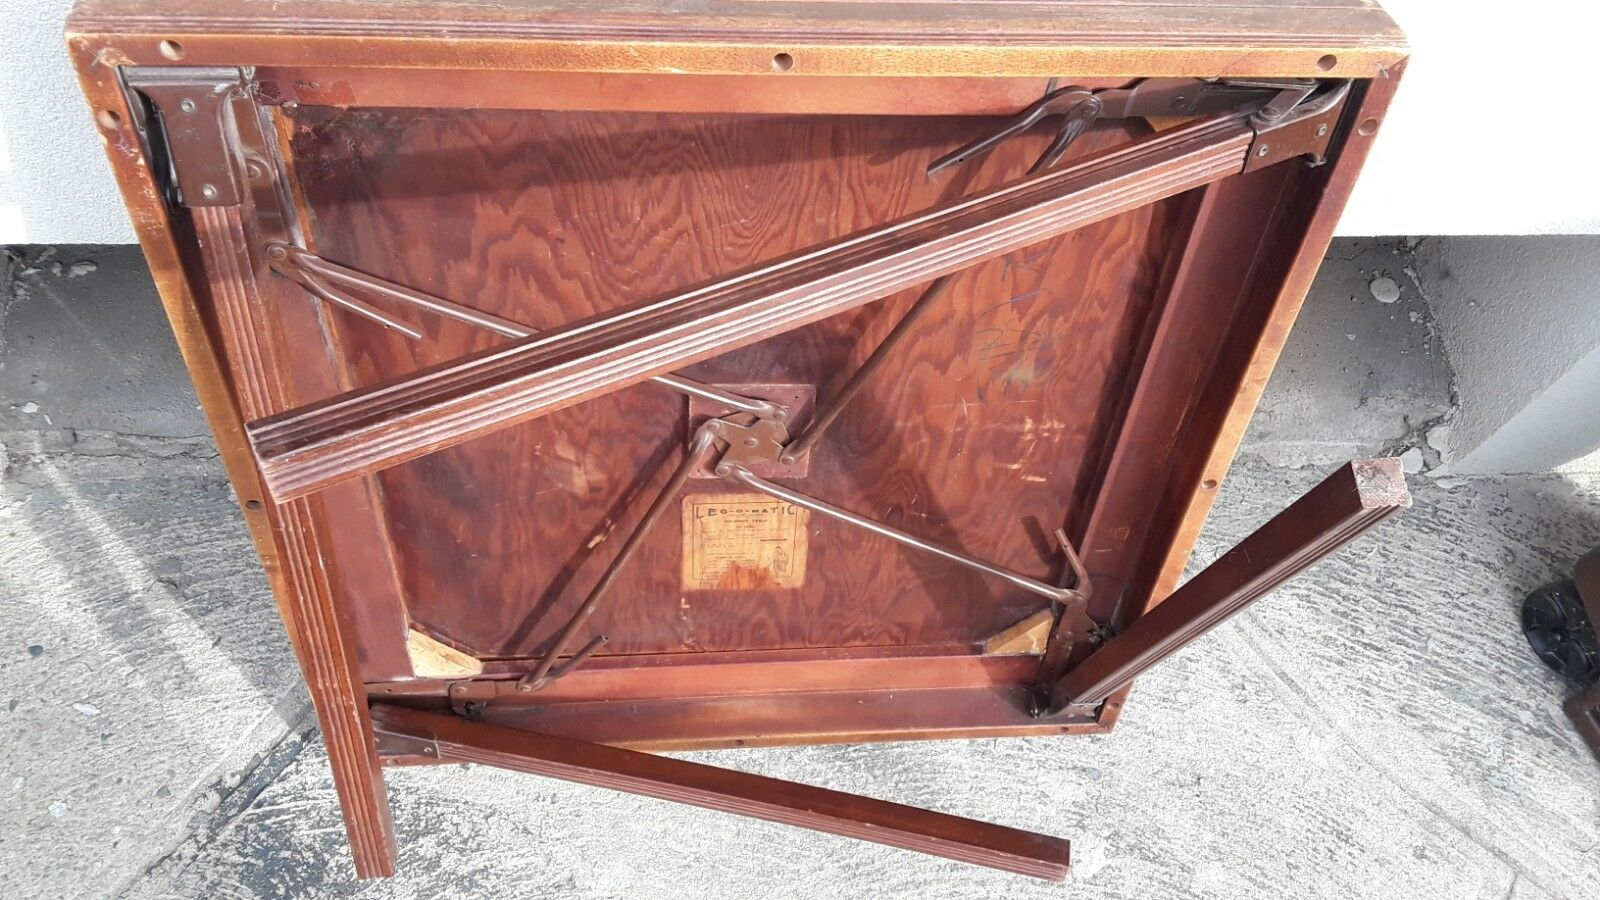 Astounding Details About Vintage Leg O Matic Lorraine Table 4 Folding Chairs For Airstream Tiny House Inzonedesignstudio Interior Chair Design Inzonedesignstudiocom